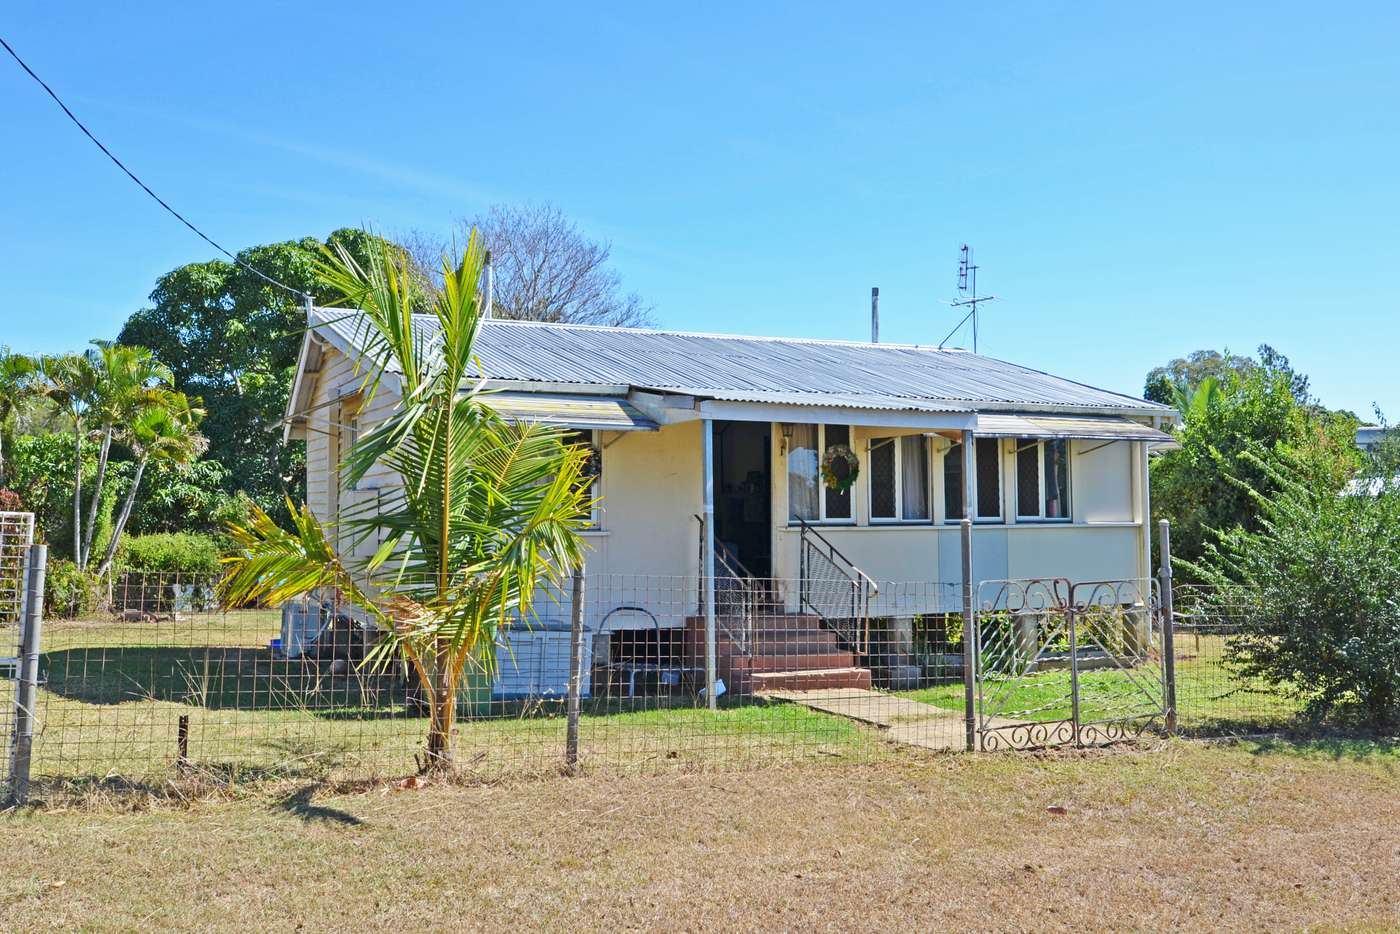 Main view of Homely house listing, 1 Molloy Street, Mareeba QLD 4880